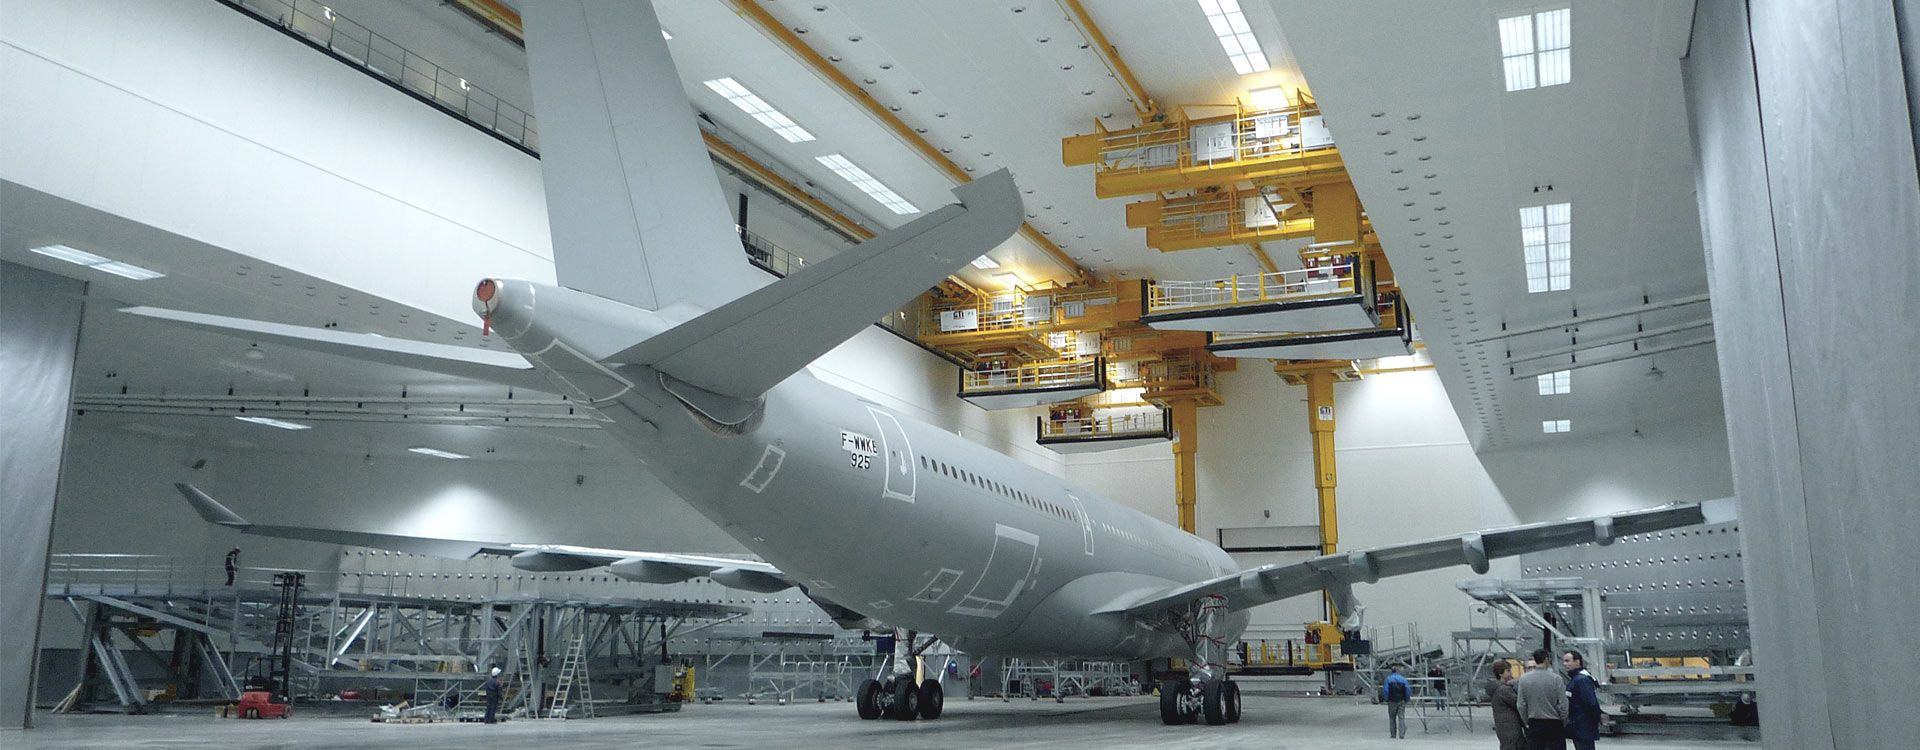 Paint-hangar-for-wide-body-aircraft_Aviation